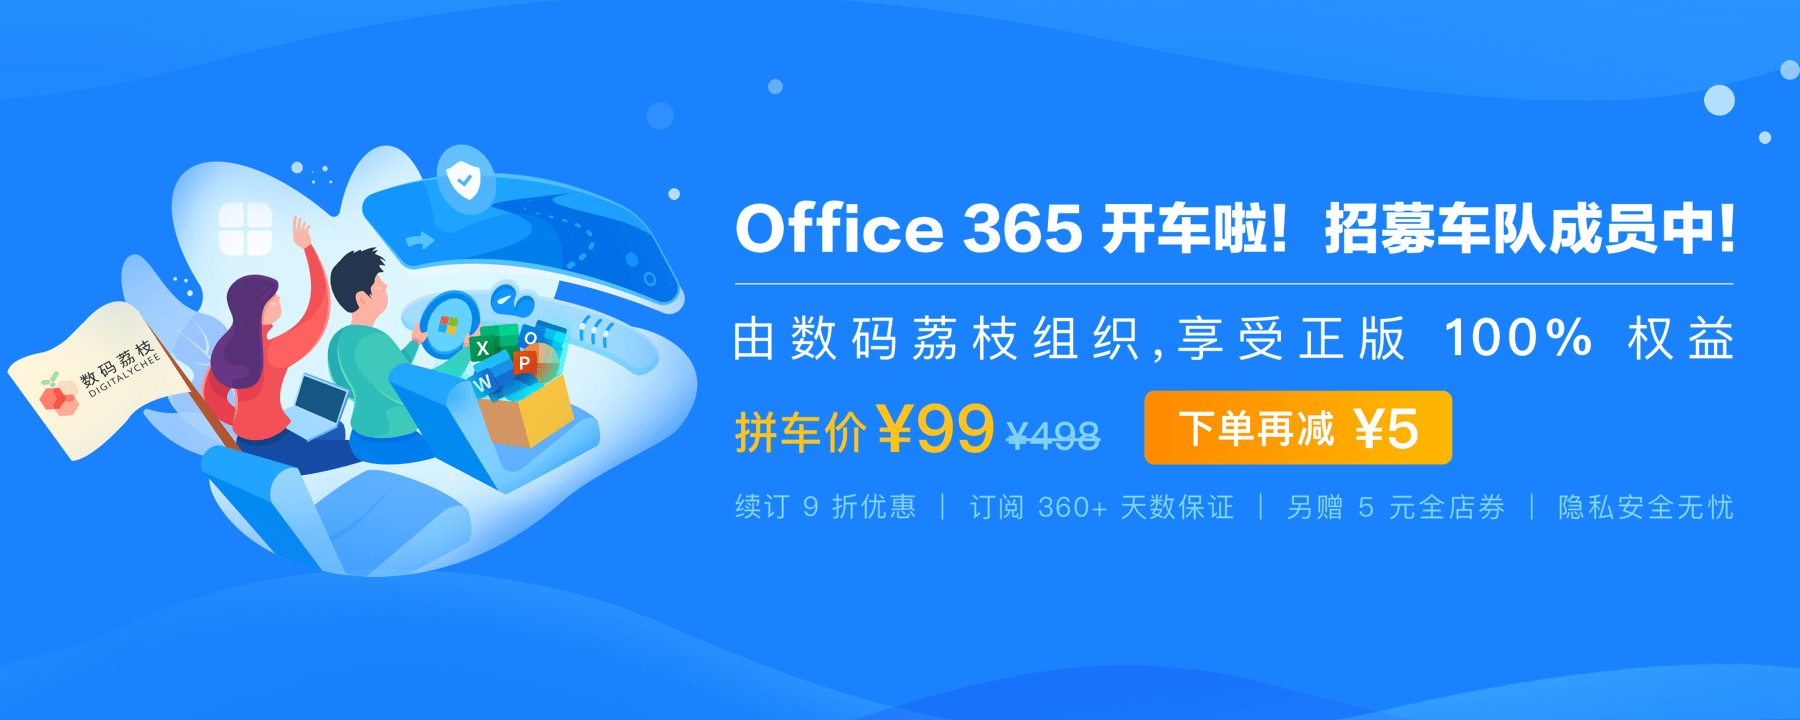 [pt]office365-share-99_900x360@2x.png